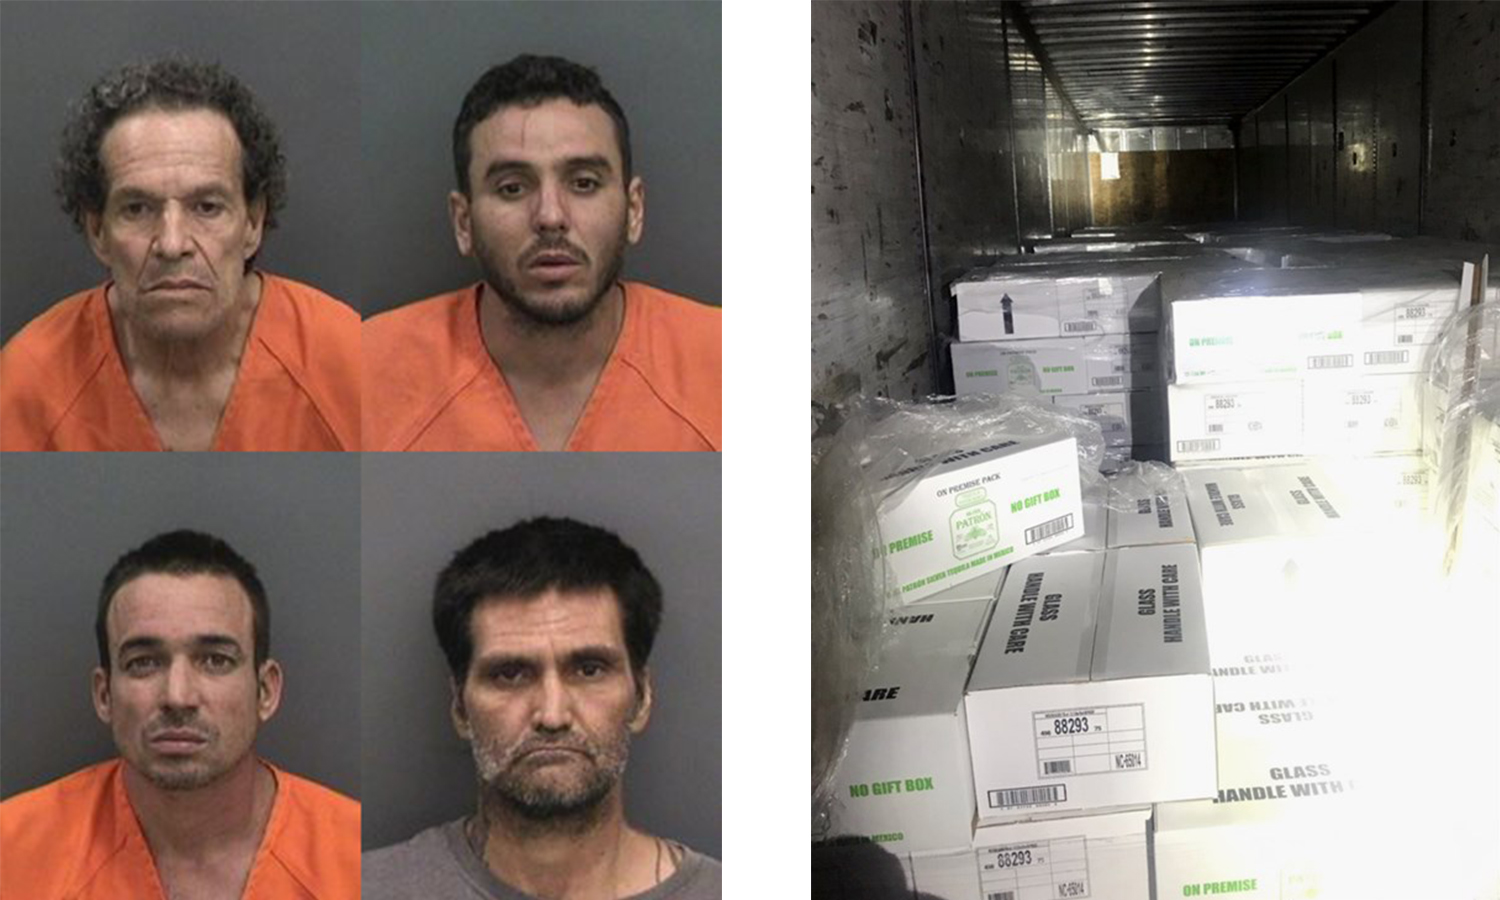 Four men were arrested on New Year's Eve in Florida for stealing over $500K worth of Tequila. HCSO photos.